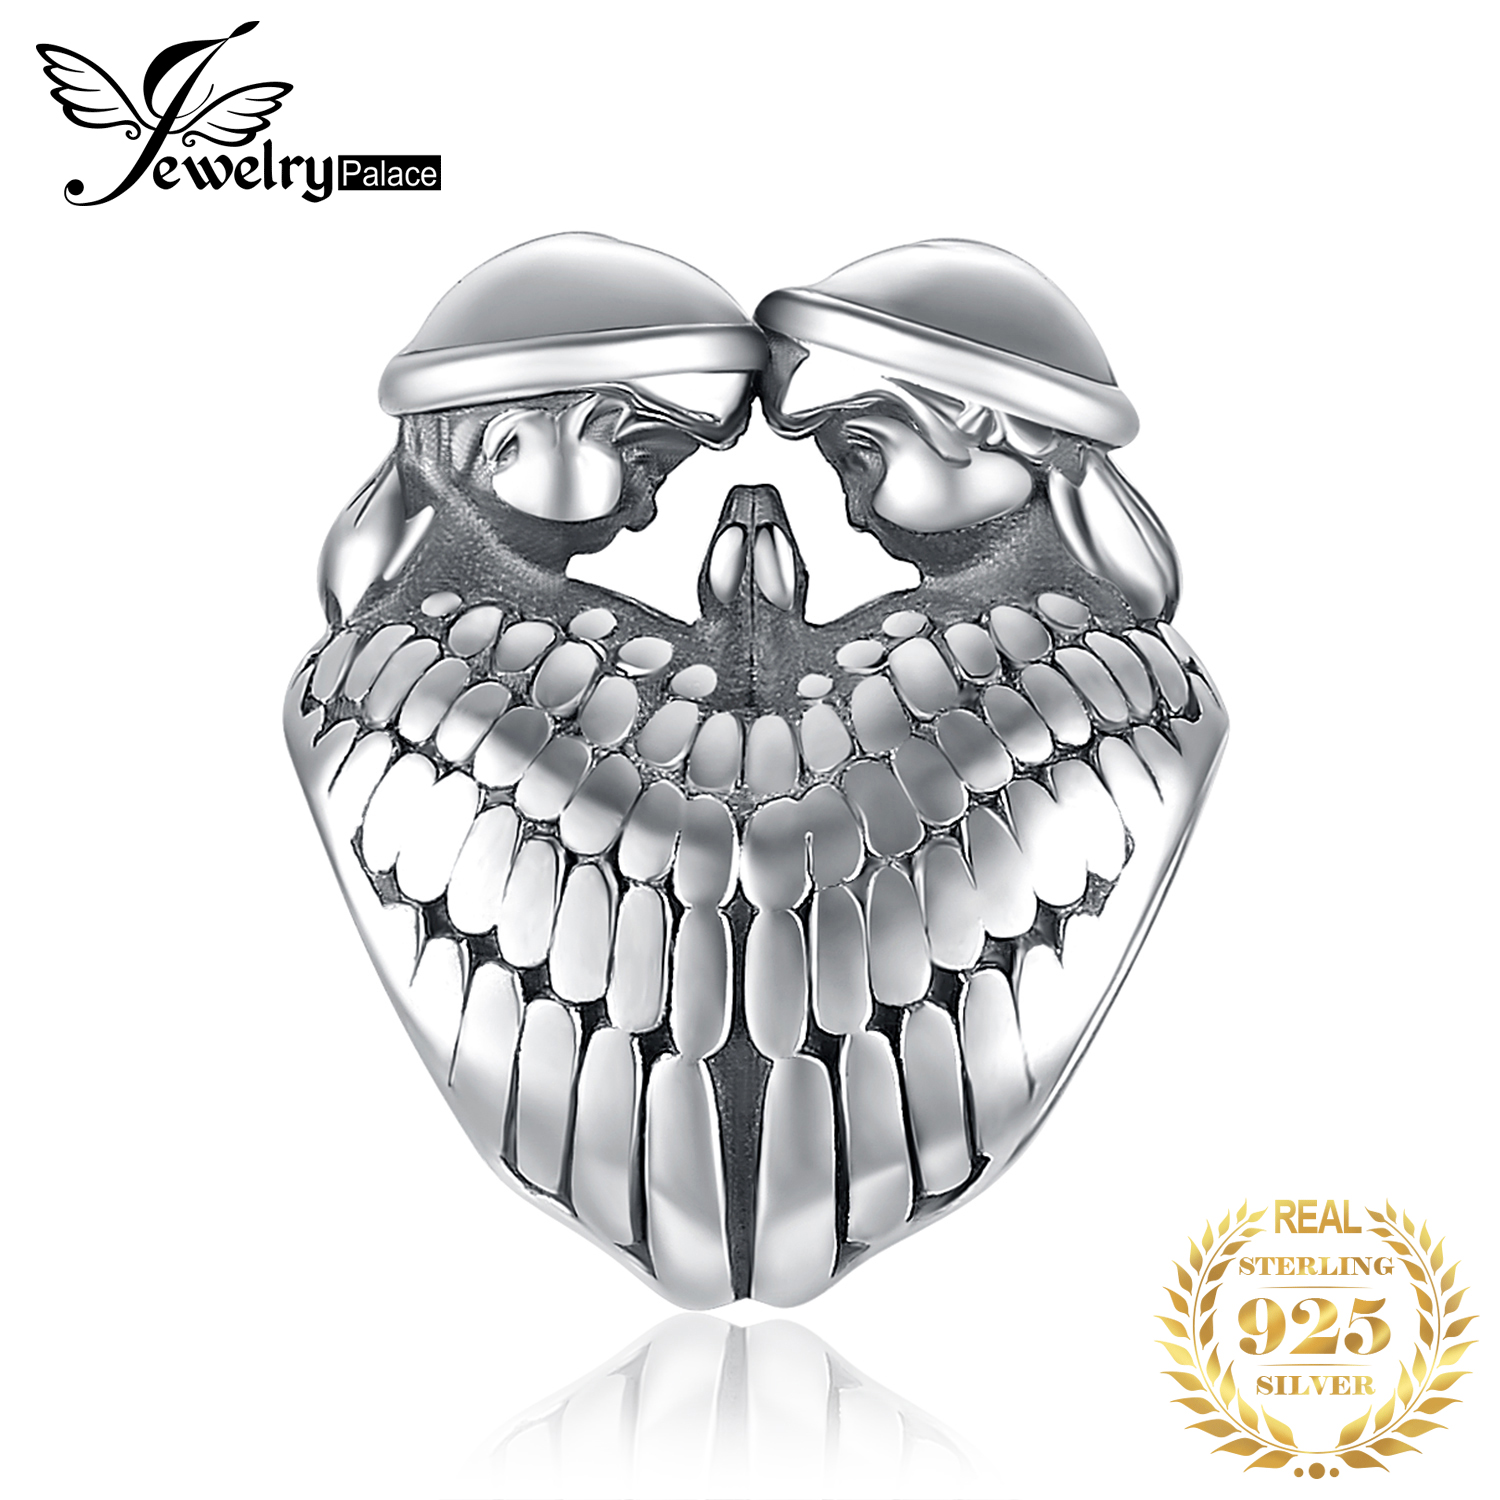 JewelryPalace Guardian Angel Wings 925 Sterling Silver Beads Charms Silver 925 Original For Bracelet Silver 925 Original Jewelry